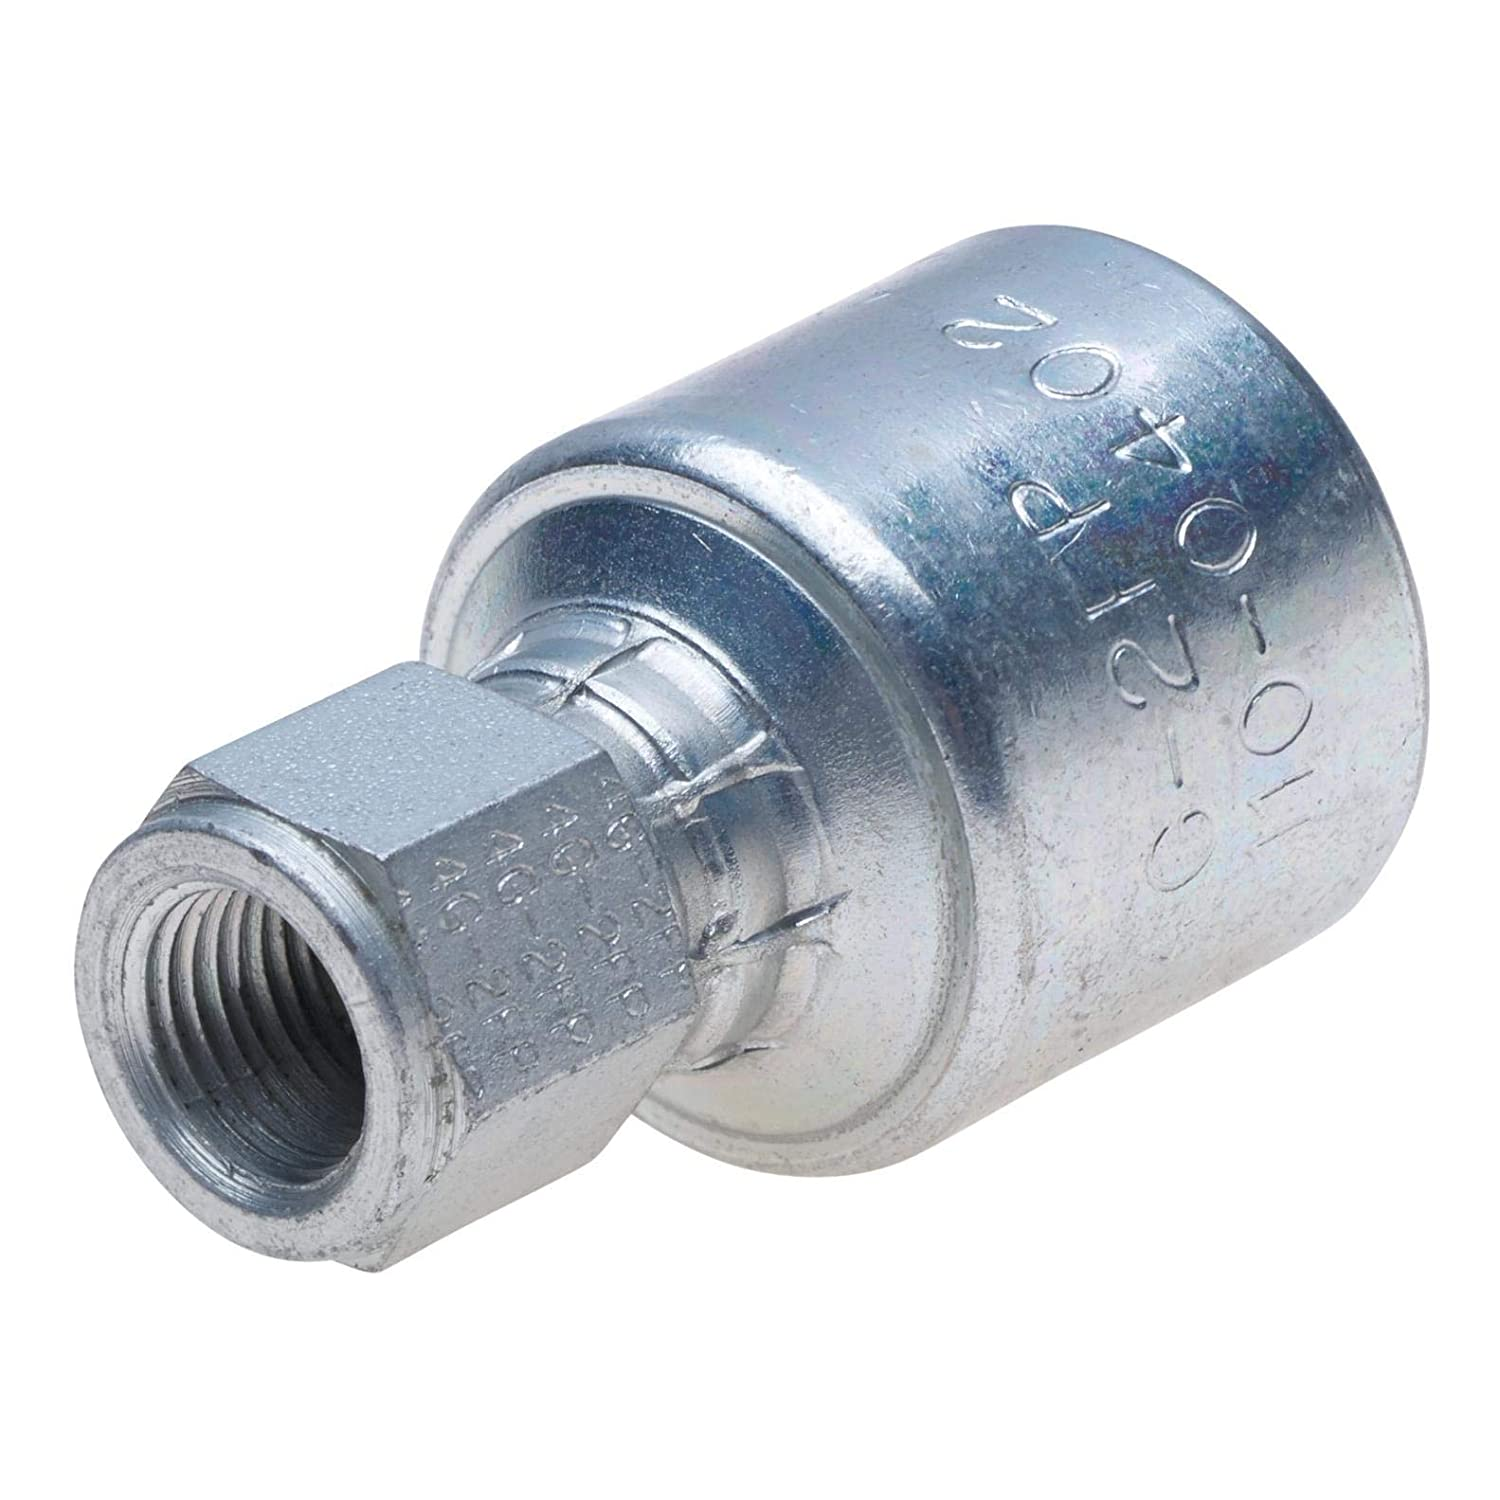 Gates 8G-8FP MegaCrimp Couplings, Female Pipe, NPTF without 30 Cone Seat, Zinc Plated Carbon Steel, 2.63', 1/2' ID (Pack of 5) 2.63 1/2 ID (Pack of 5)